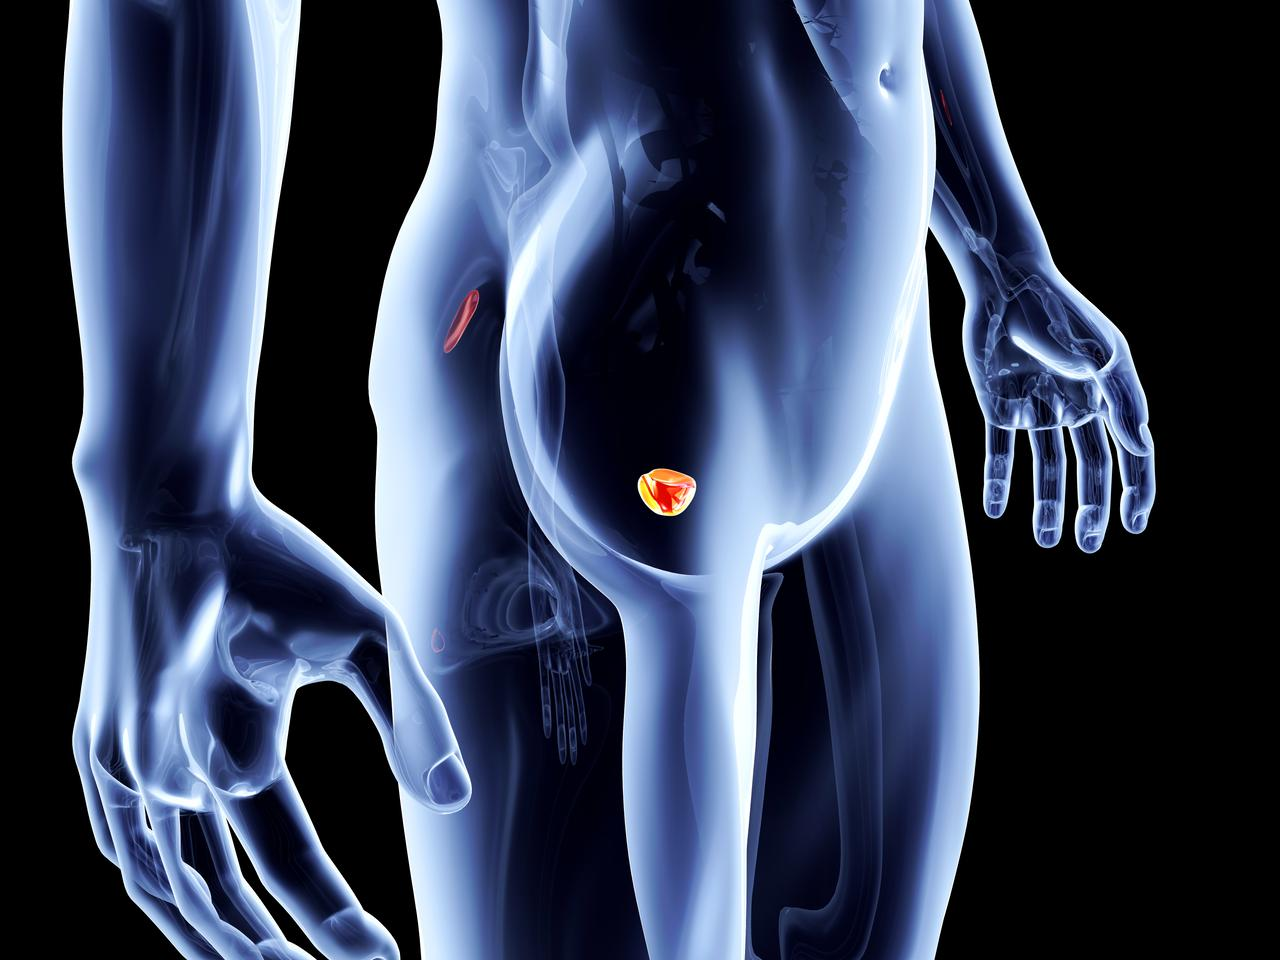 A new urine test that patients can use at home has the ability to detect the aggressiveness of prostate cancers